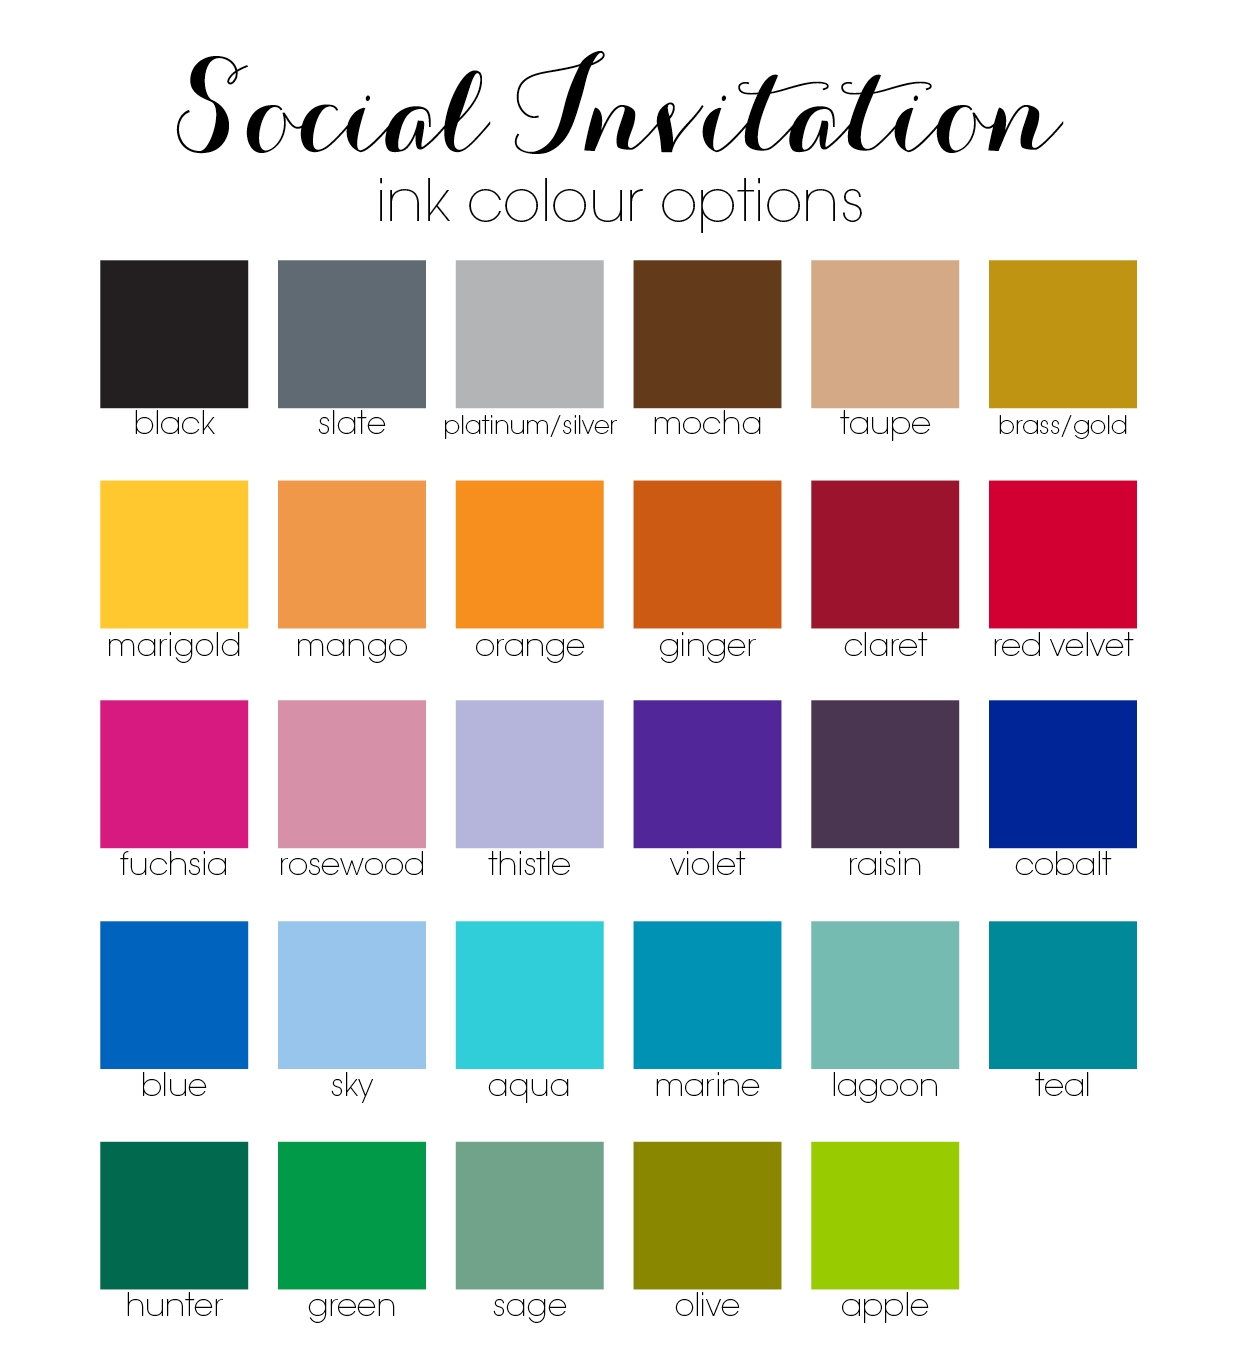 Social_Invitation_colour_options2